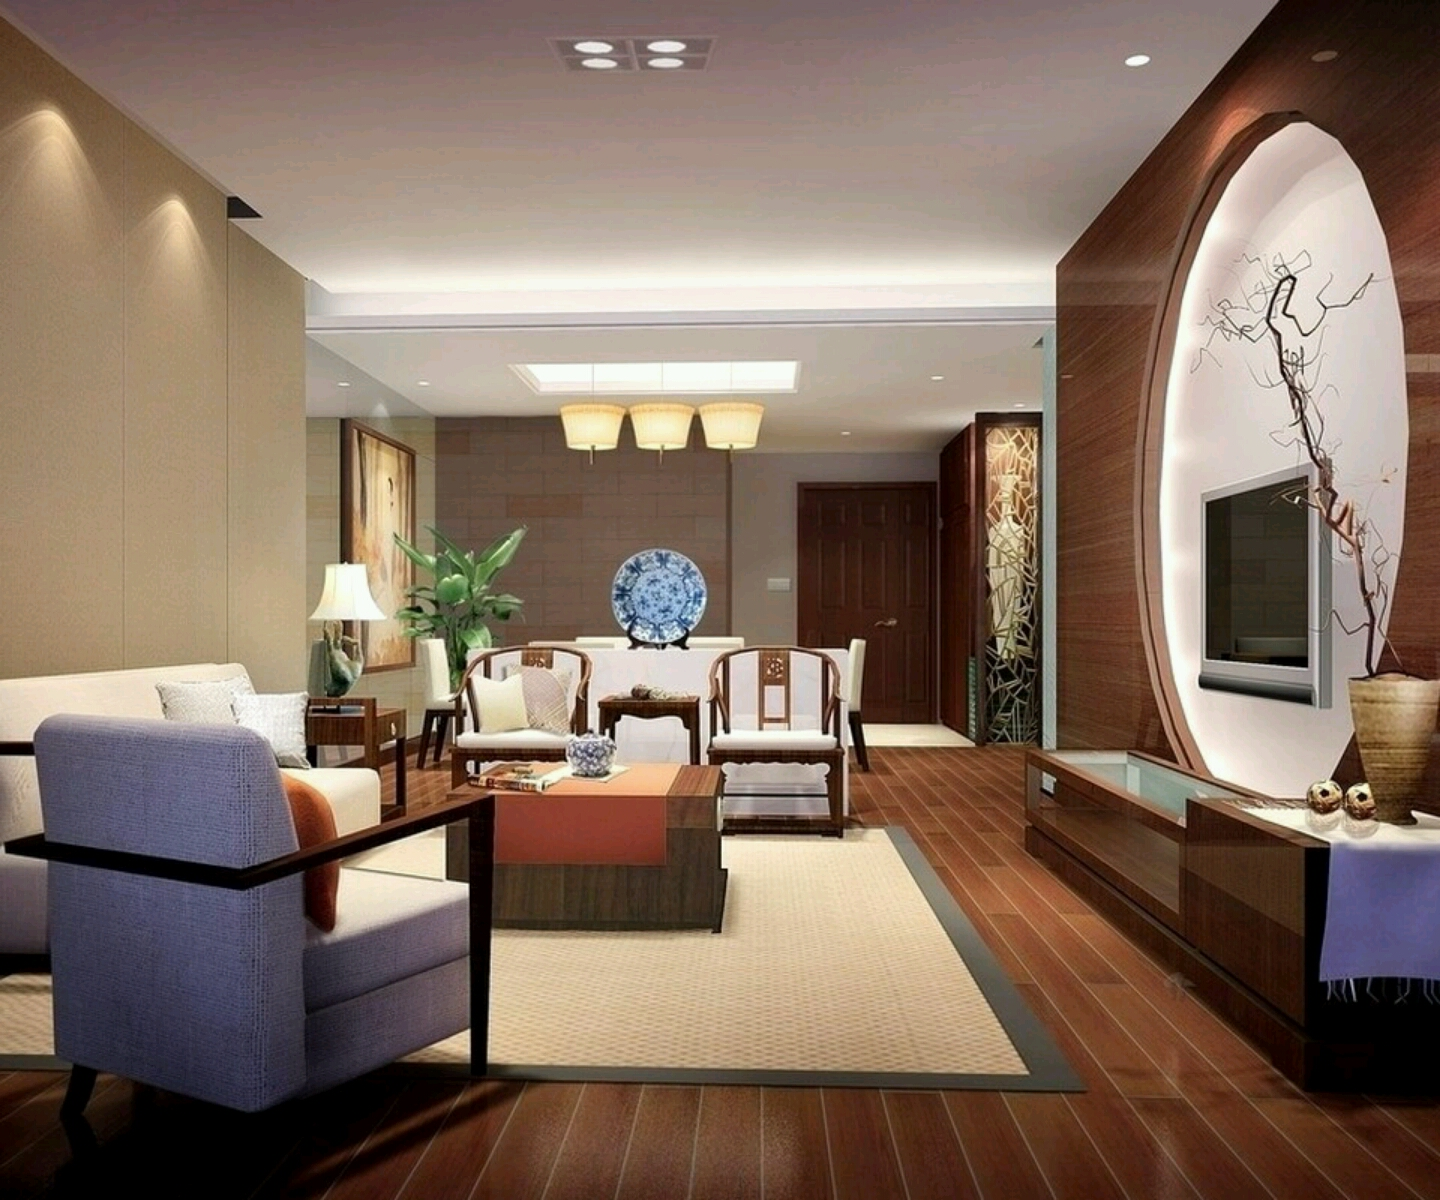 Luxury homes interior decoration living room designs ideas Interior design ideas living room small